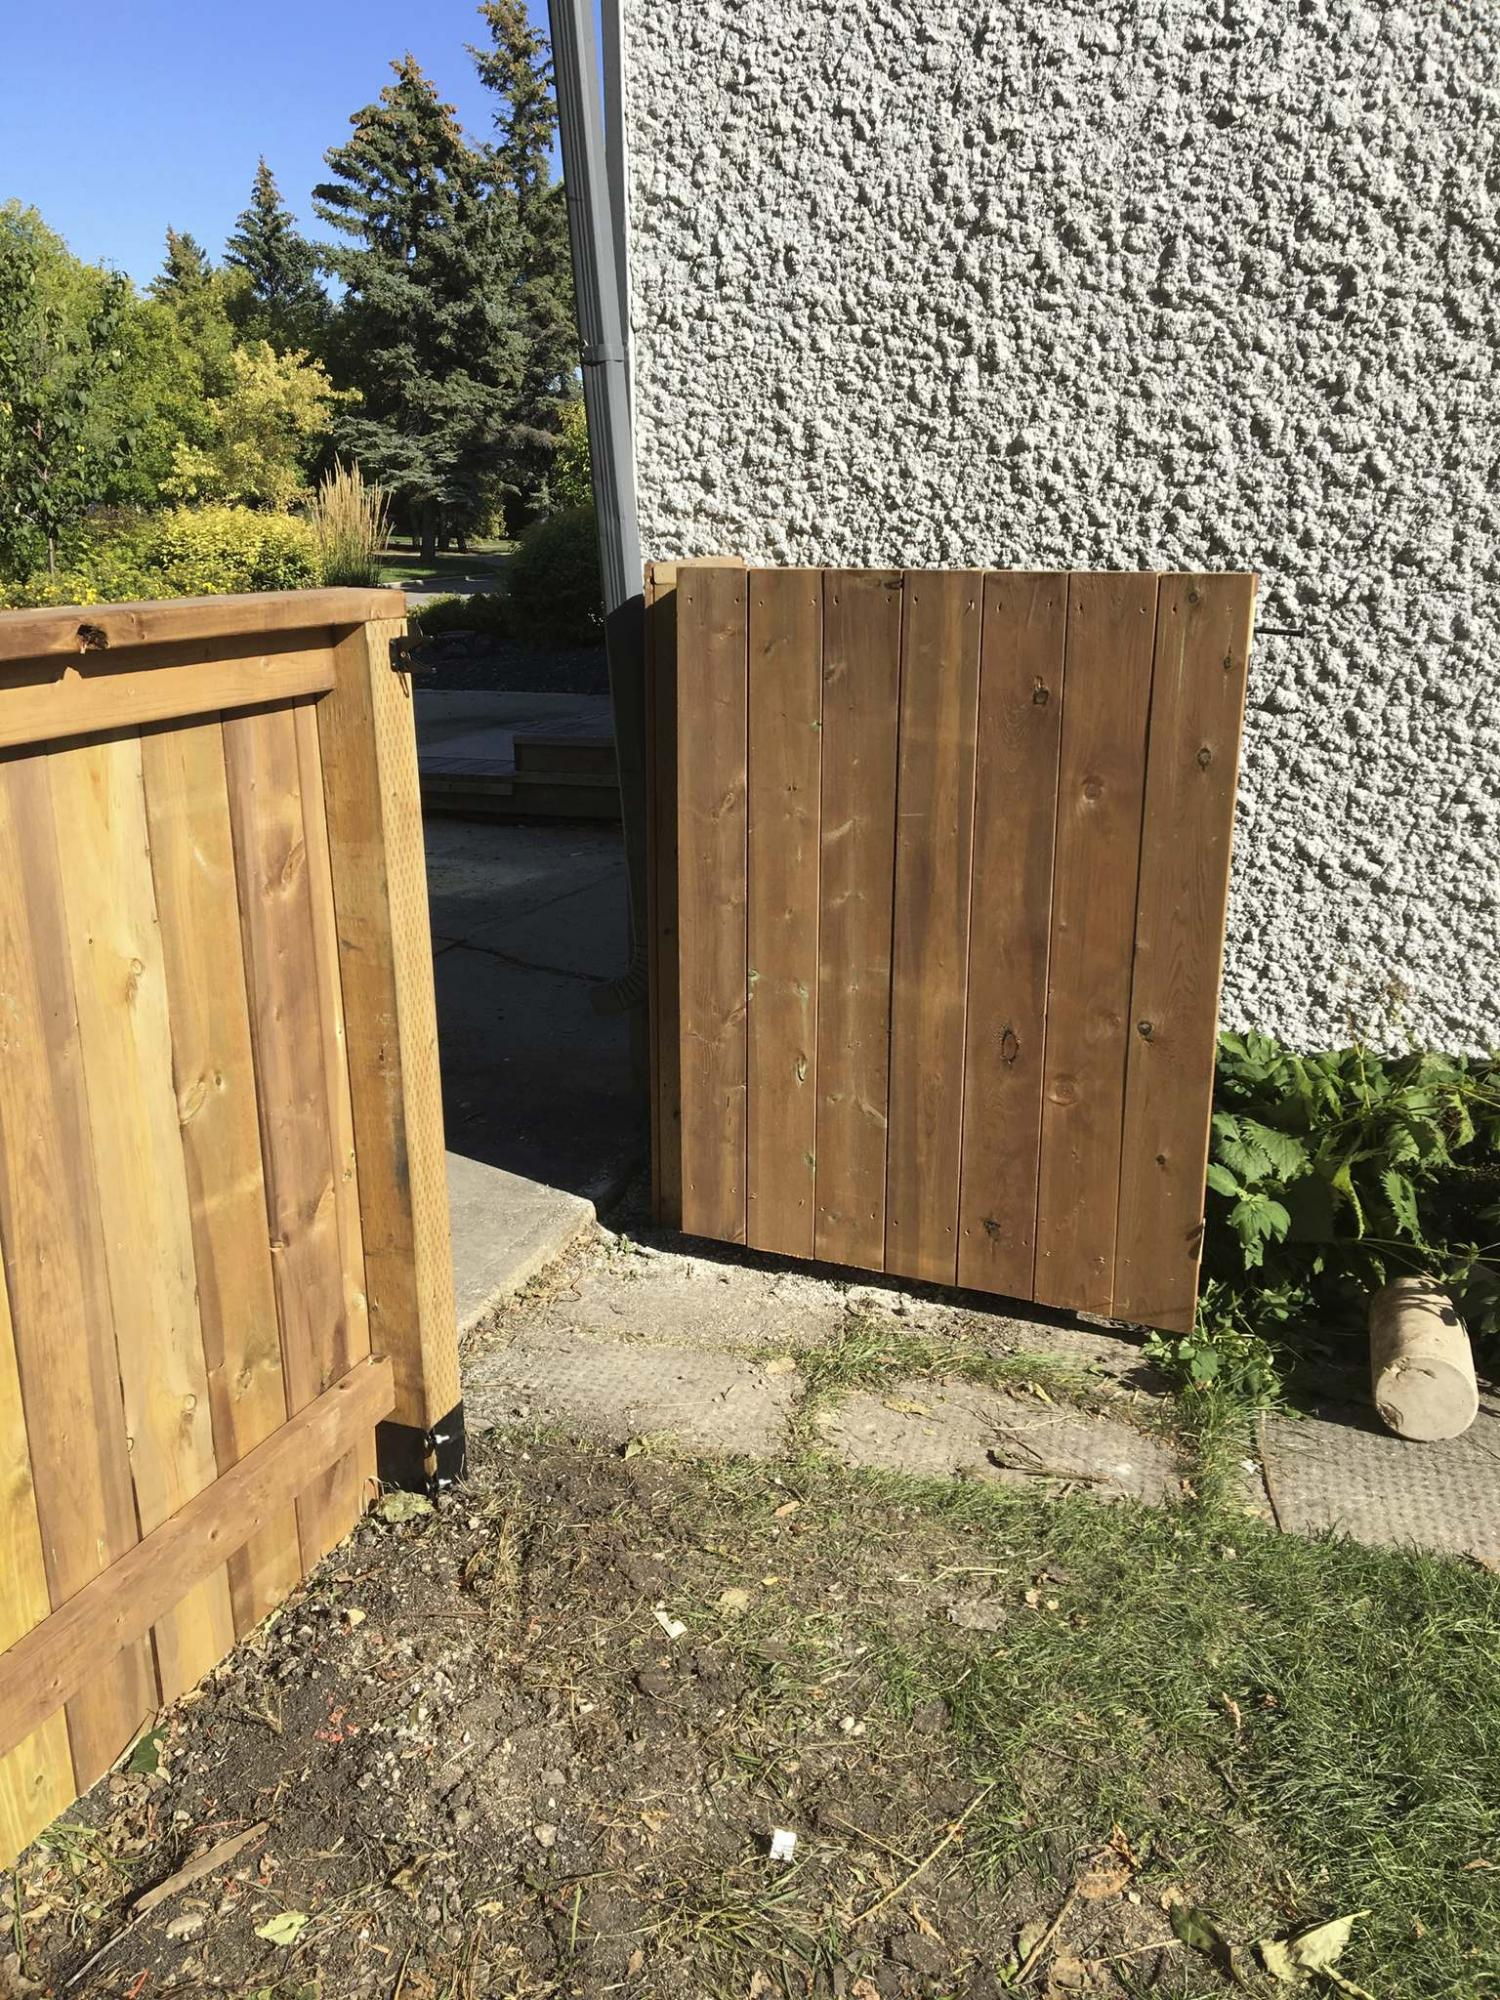 <p>Fence boards on the gate render it invisible from the front when the gate is shut.</p>